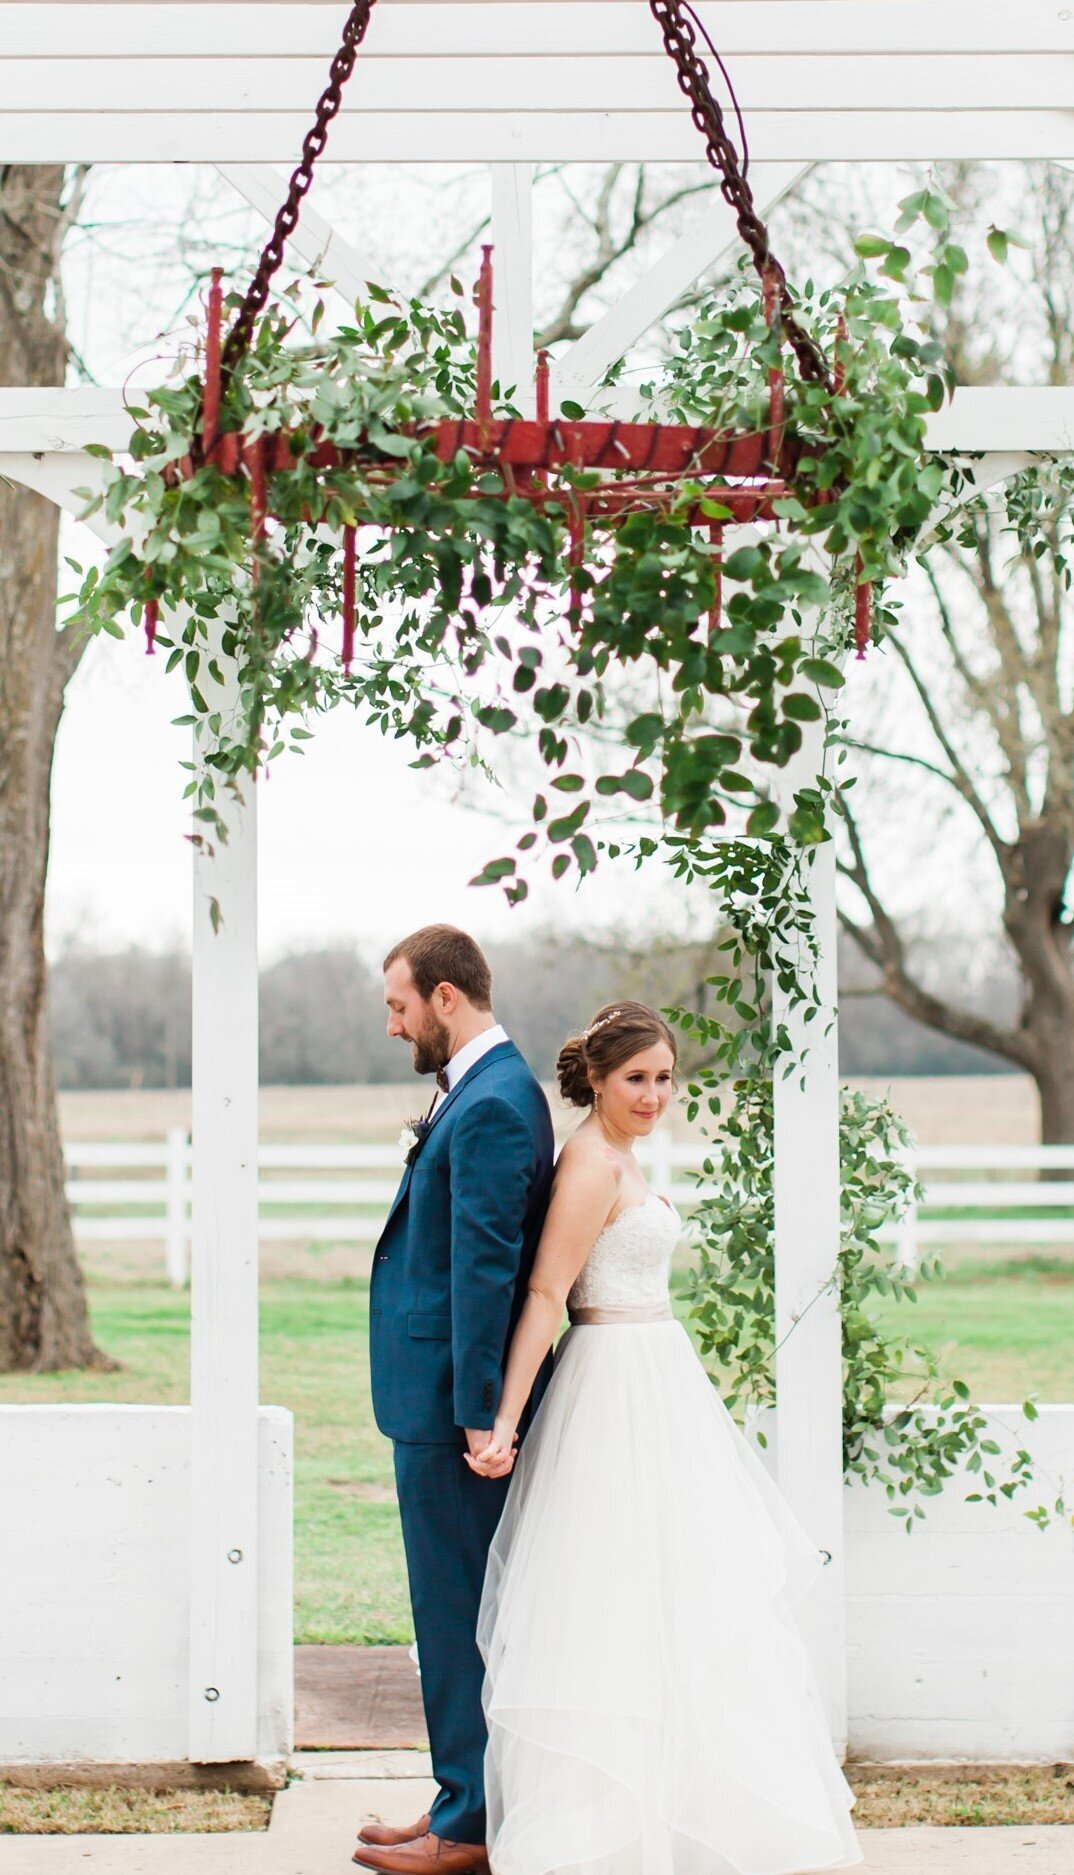 A bride and groom standing under a gorgeous red chandelier on wedding day. They are back to back getting ready for their first look